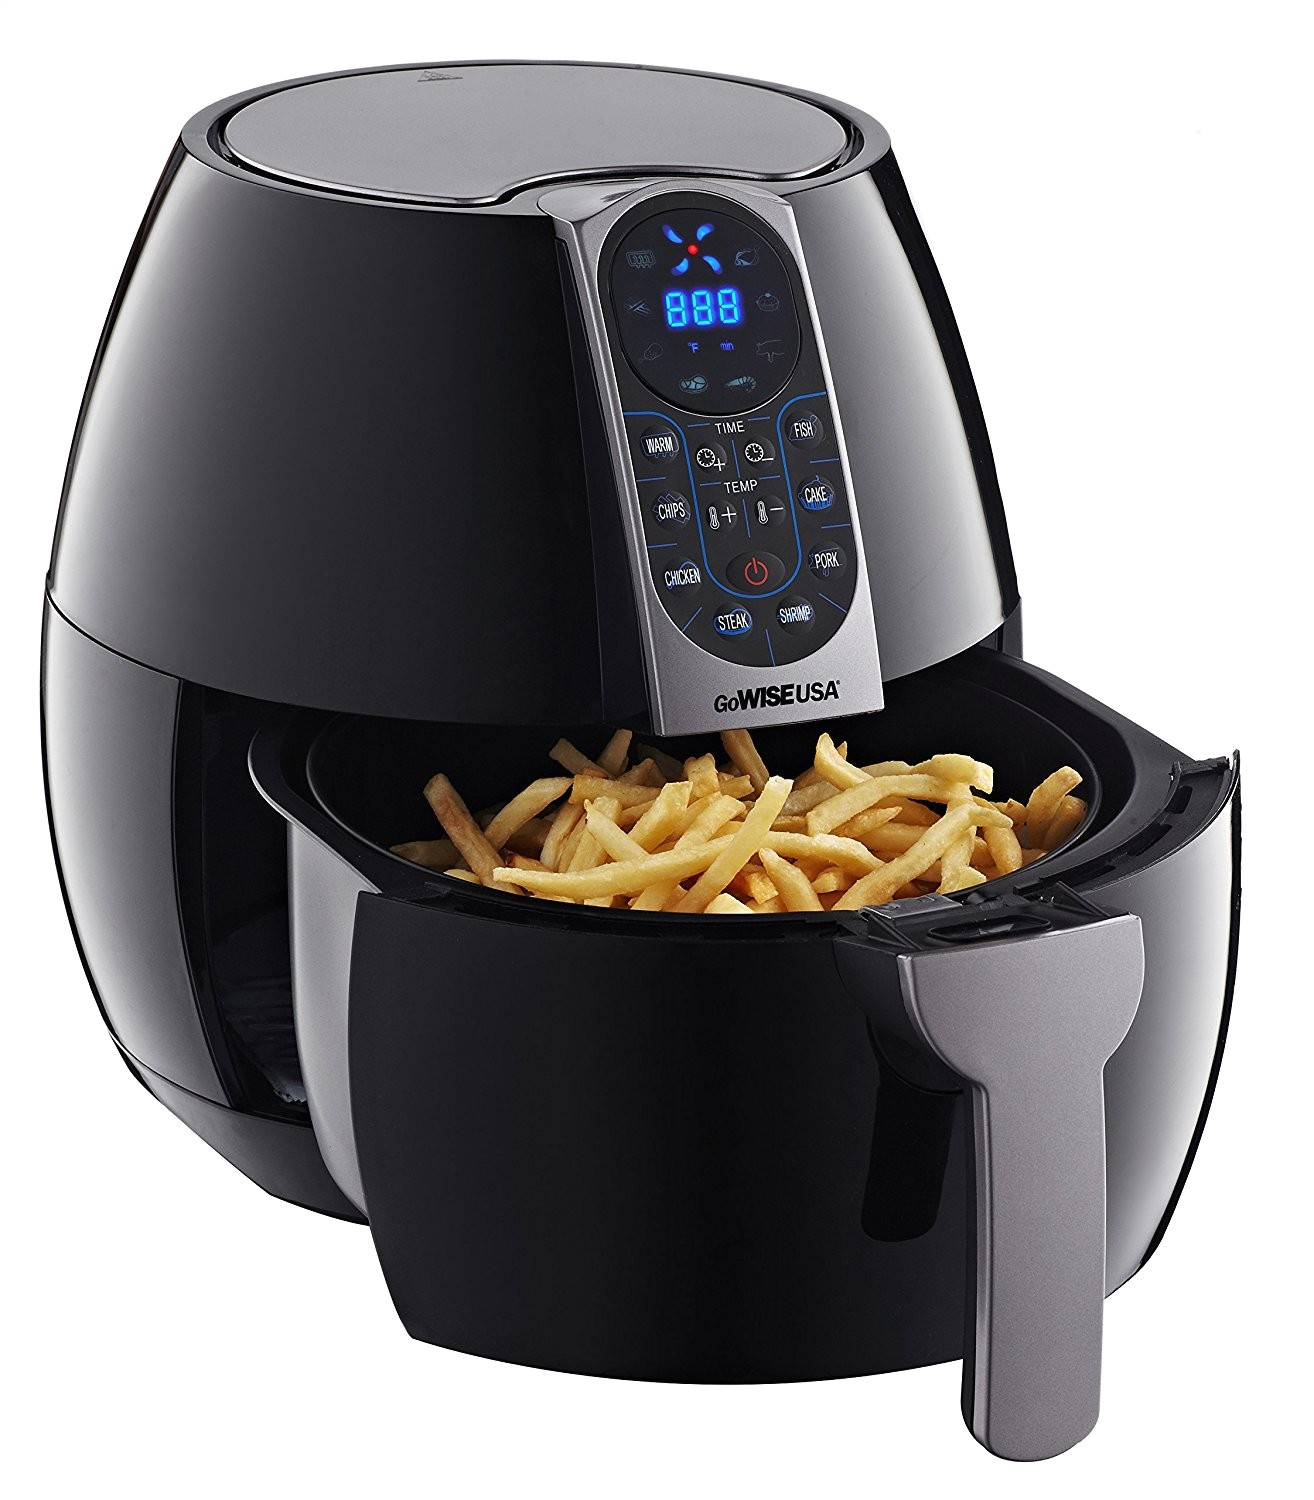 gowise usa gw22638 8in1 2 0 electric air fryer